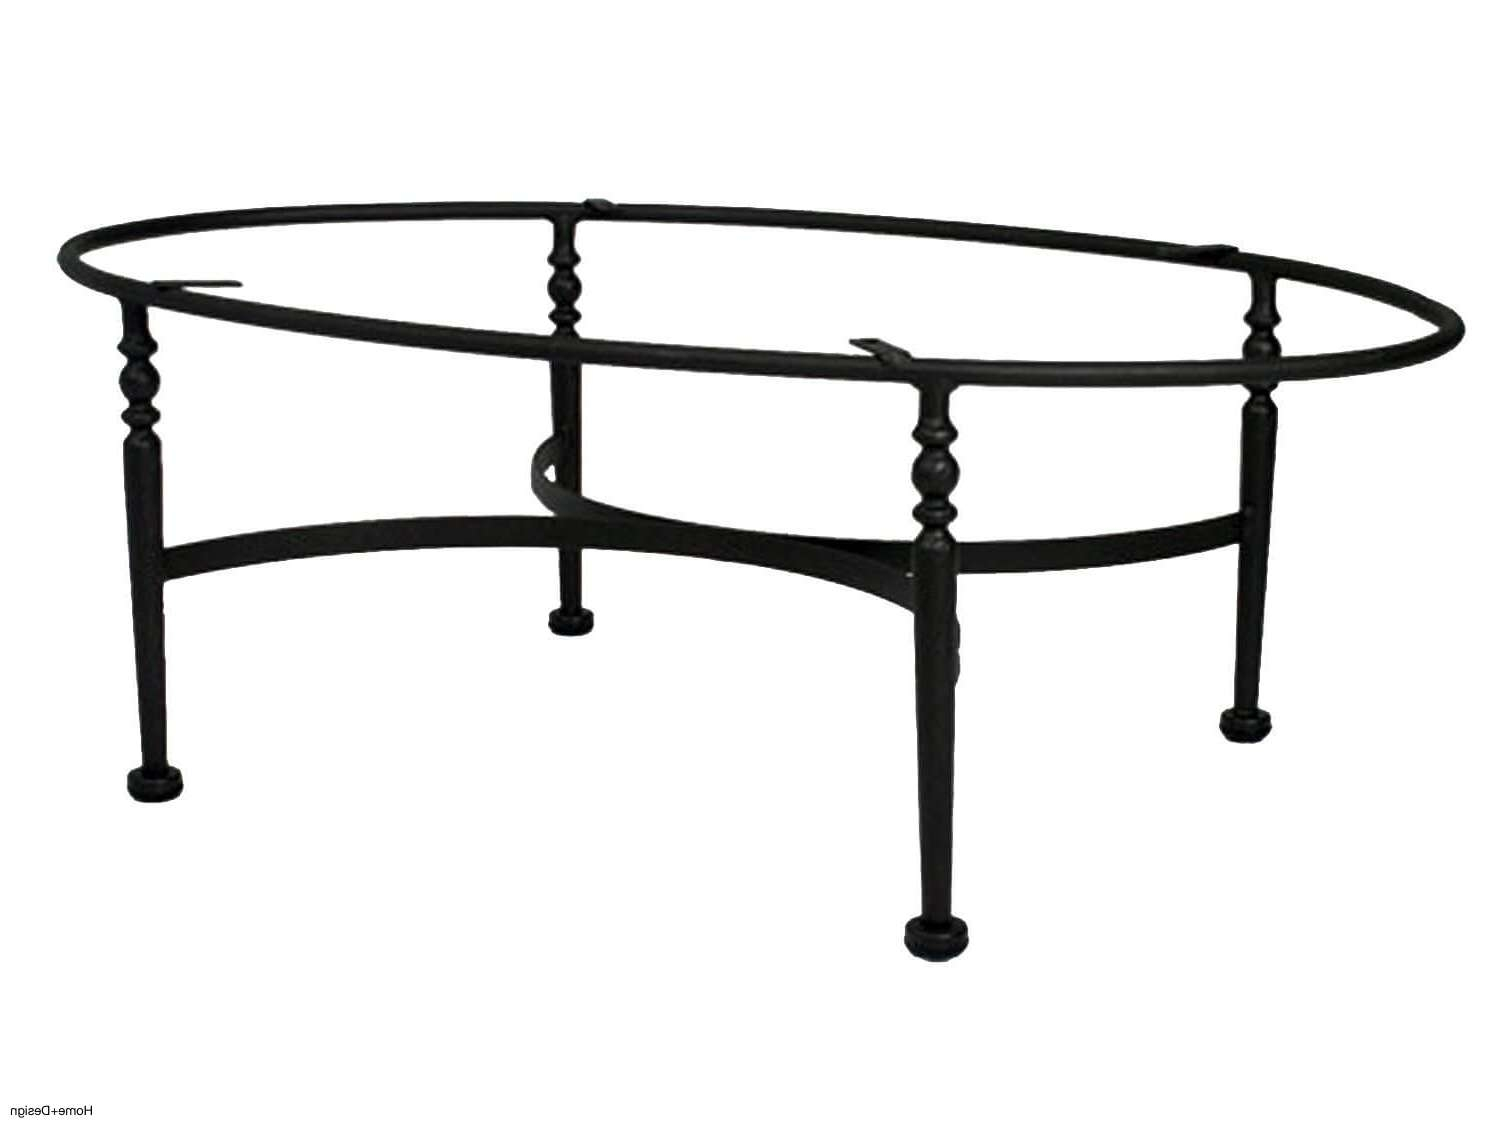 Wrought Iron Coffee Table Bases Home Design Legs And Inexpensive Throughout 2018 Wrought Iron Coffee Tables (View 19 of 20)